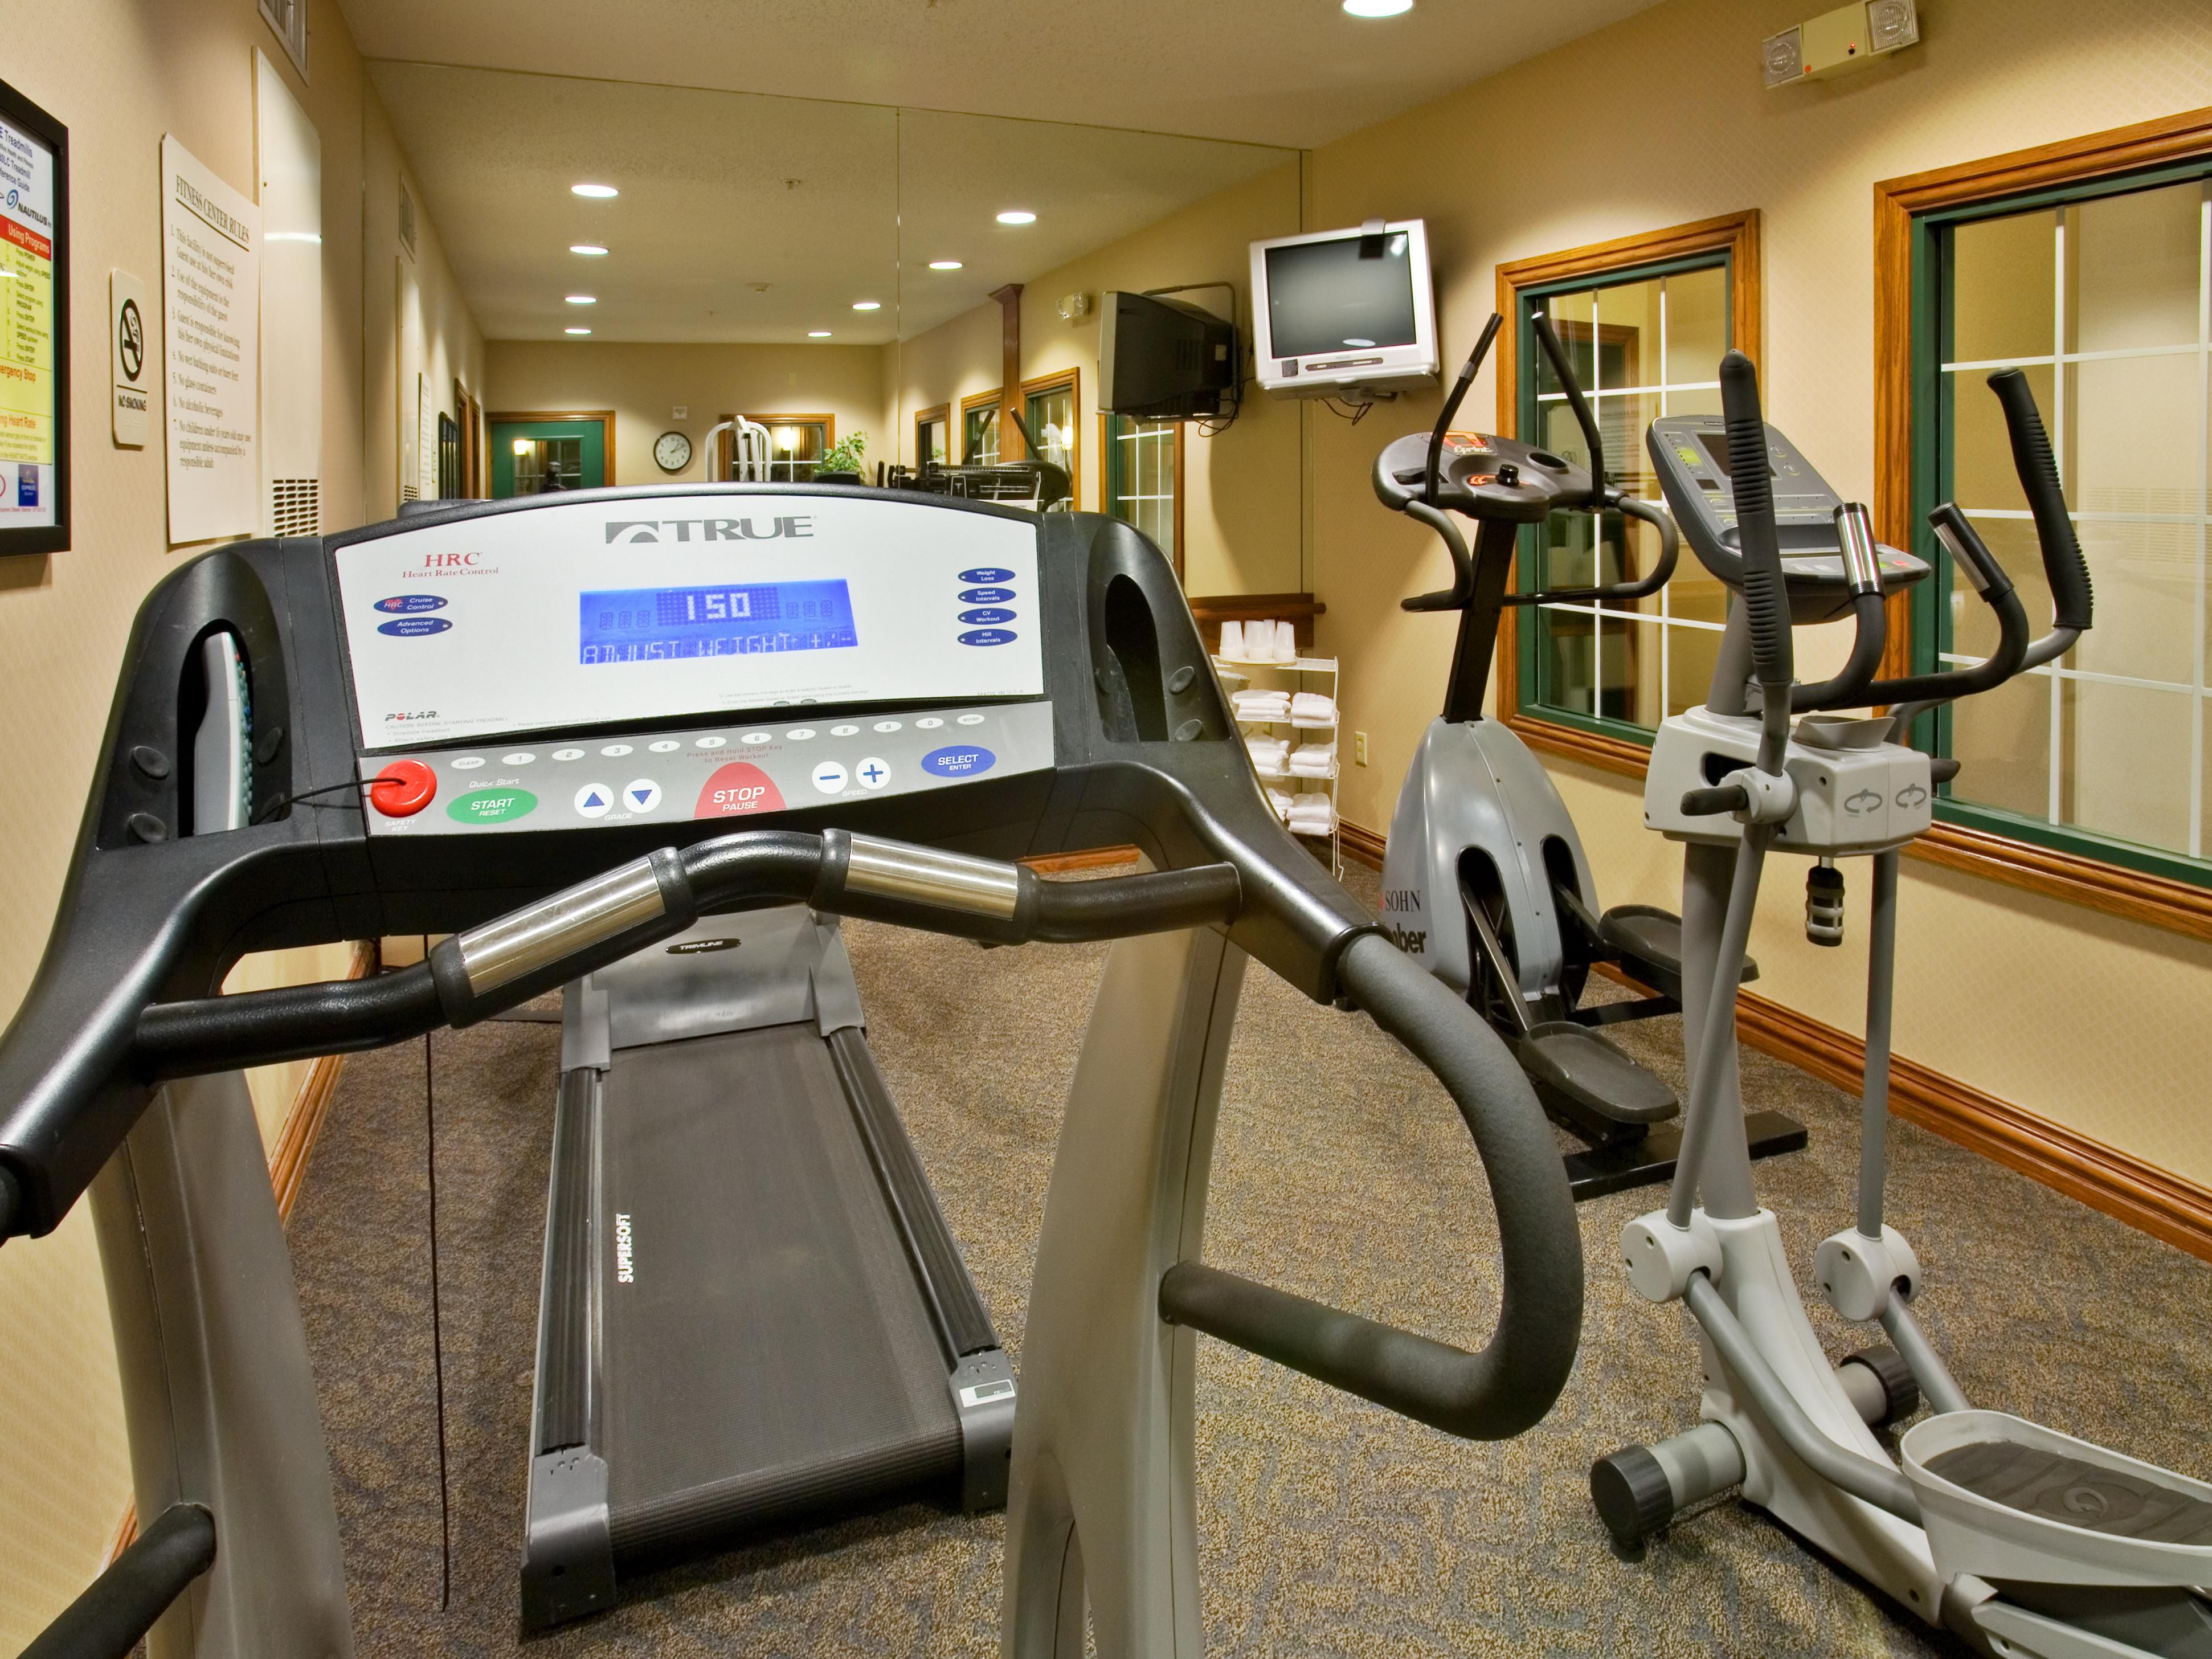 Holiday Inn Express Addison Fitness Center